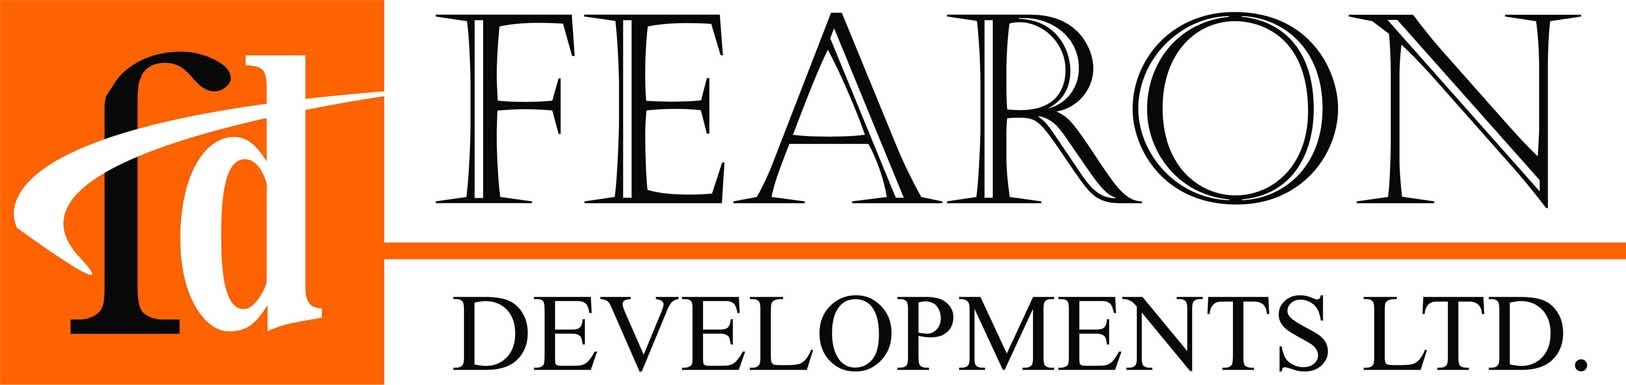 Fearon Developments